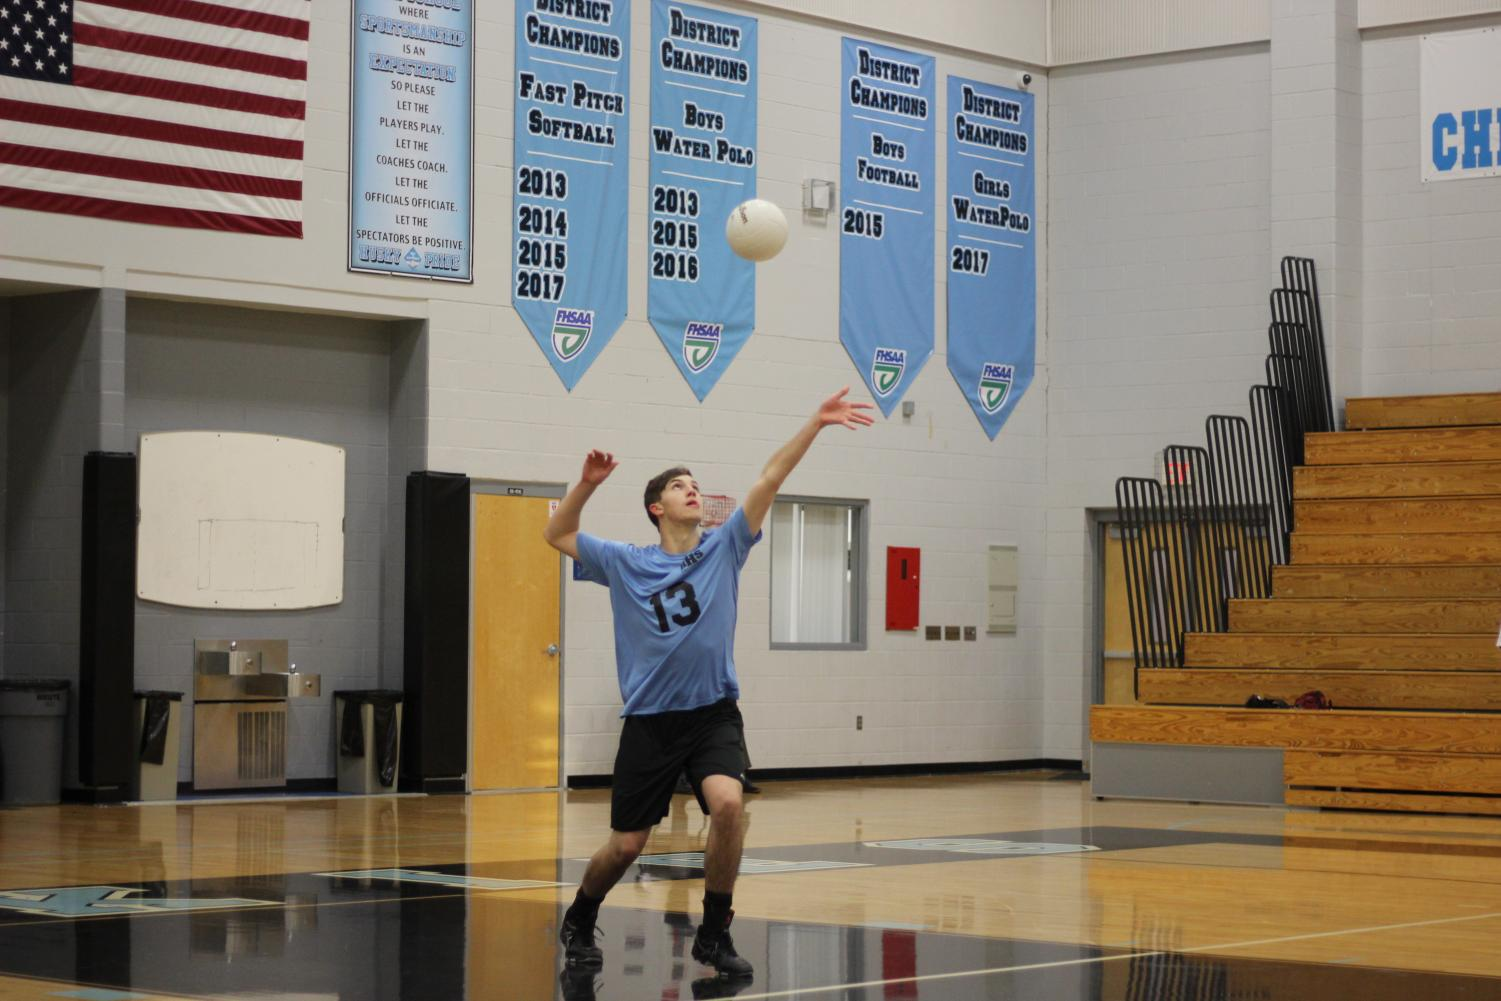 Middle Daniel Heinis serves the ball in the game over Lake Mary. The team won 3-2.